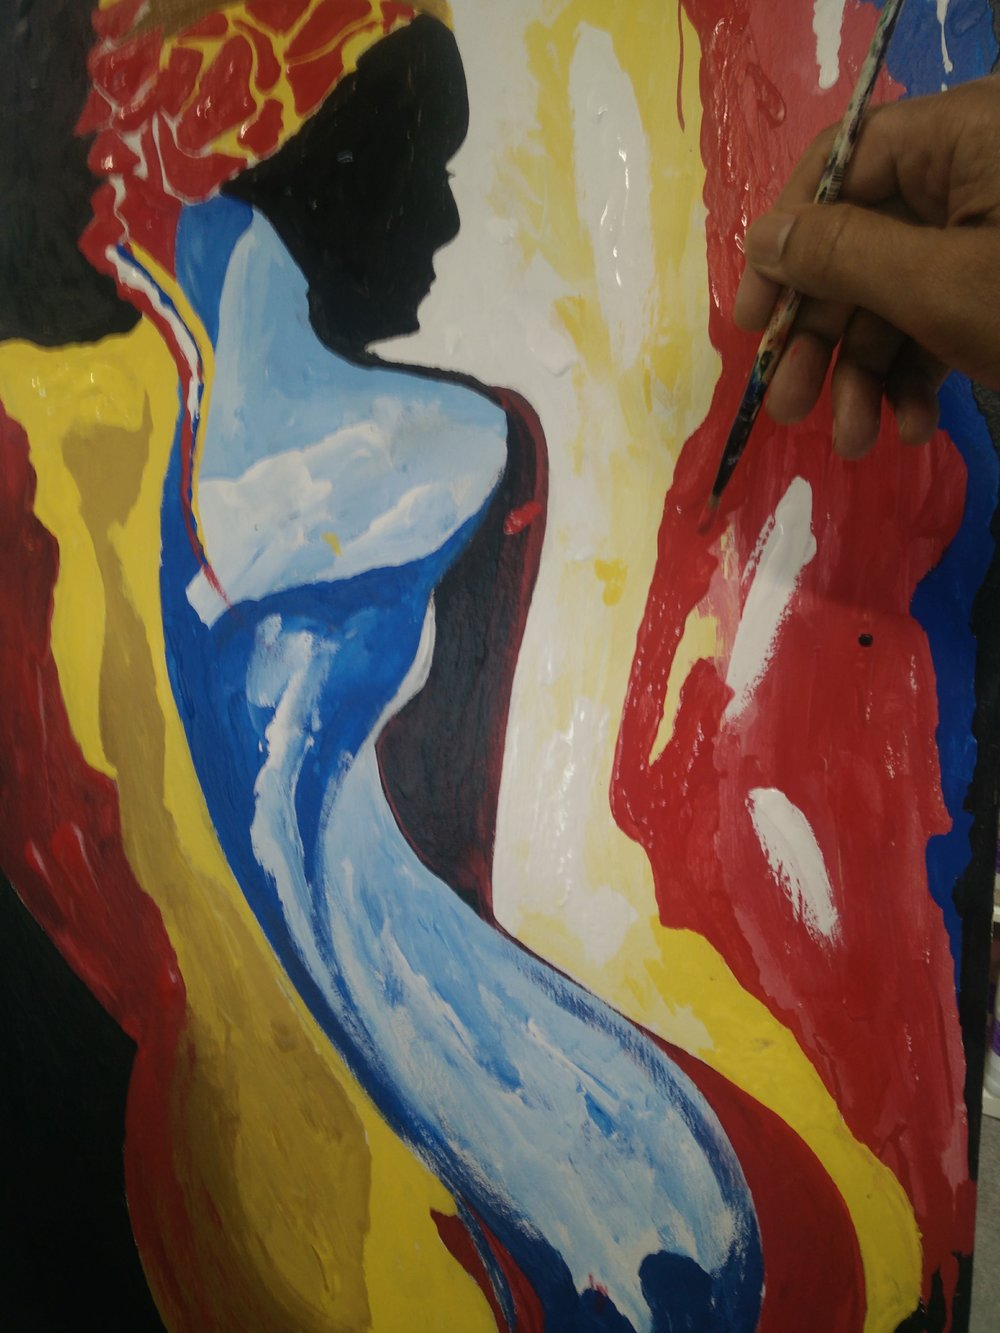 Painting The Abstract Figure. - Wednesdays and Saturdays, 90 minutes sessionIf you ever wanted to learn how to paint the freestyle abstract figure? this session is for you. Join the two hours of artistic journey of Abstract Figurative Painting with vivid acrylic colors on 16 X 24 drywall panel. No prior experience required. The instructor will show you how to quickly sketch and walk you through various painting techniques. No live model. You will create from fresh and bold new interpretation of undraped human figure from original paintings of our instructors. Level: BeginnerSupplies: All supplies included.